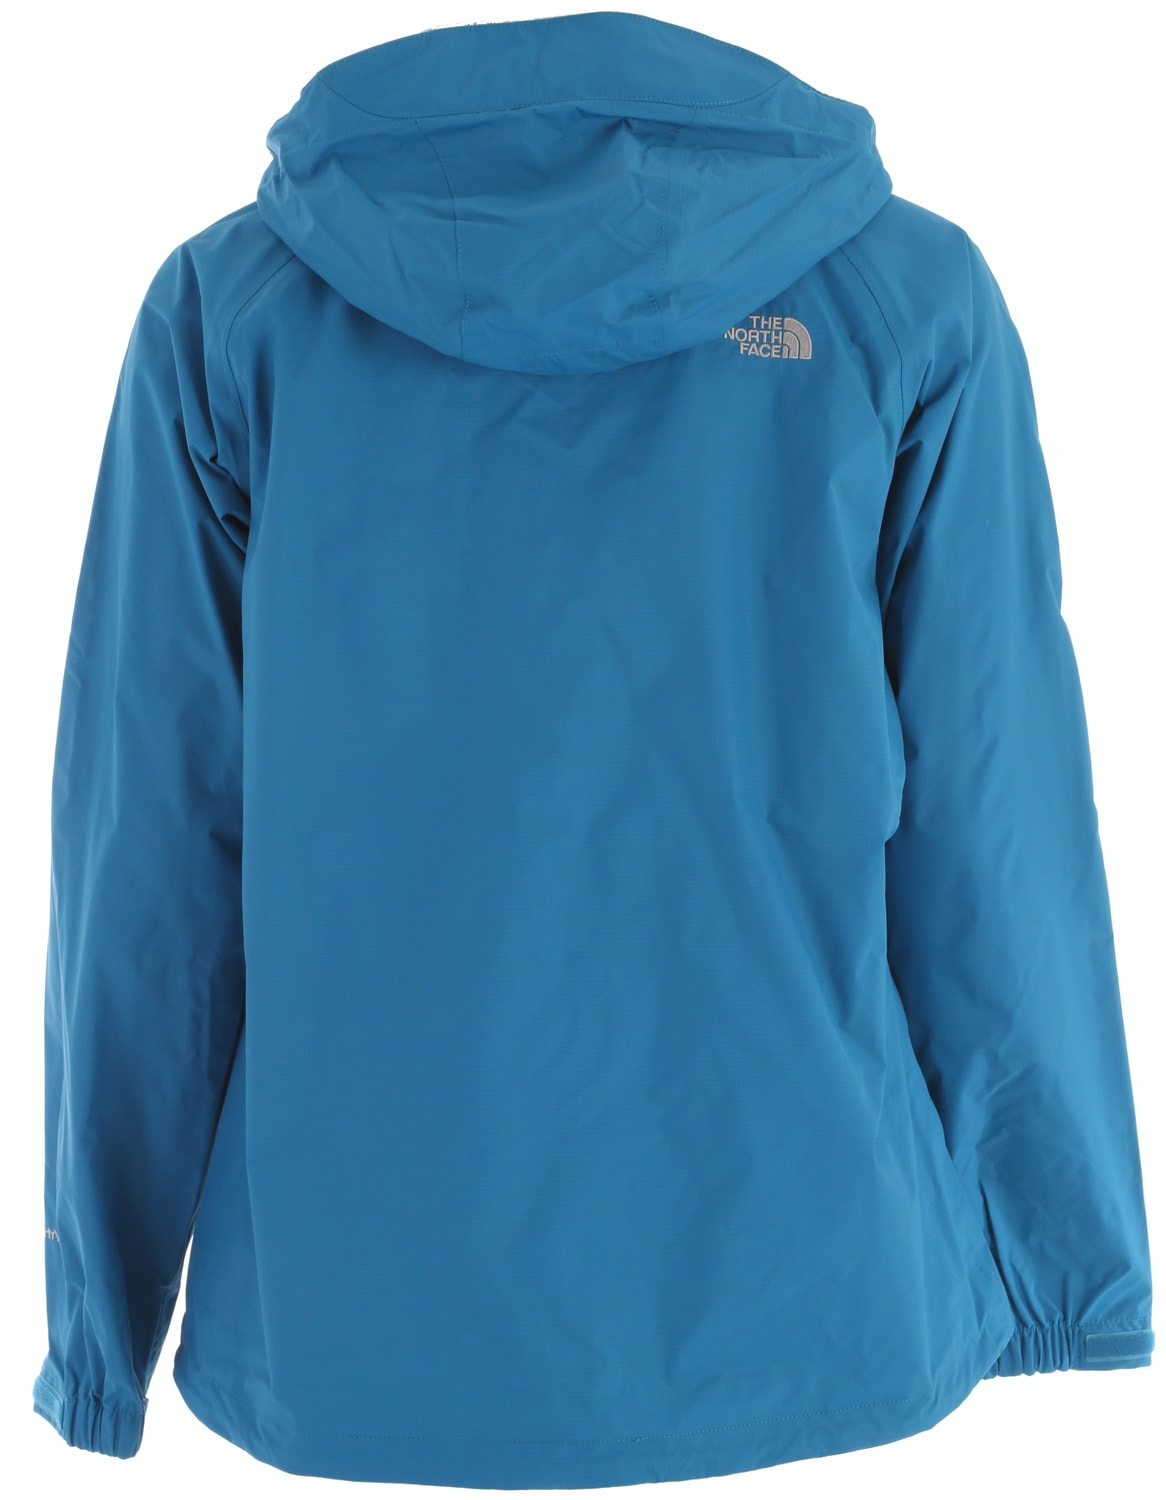 Womens north face venture jacket on sale